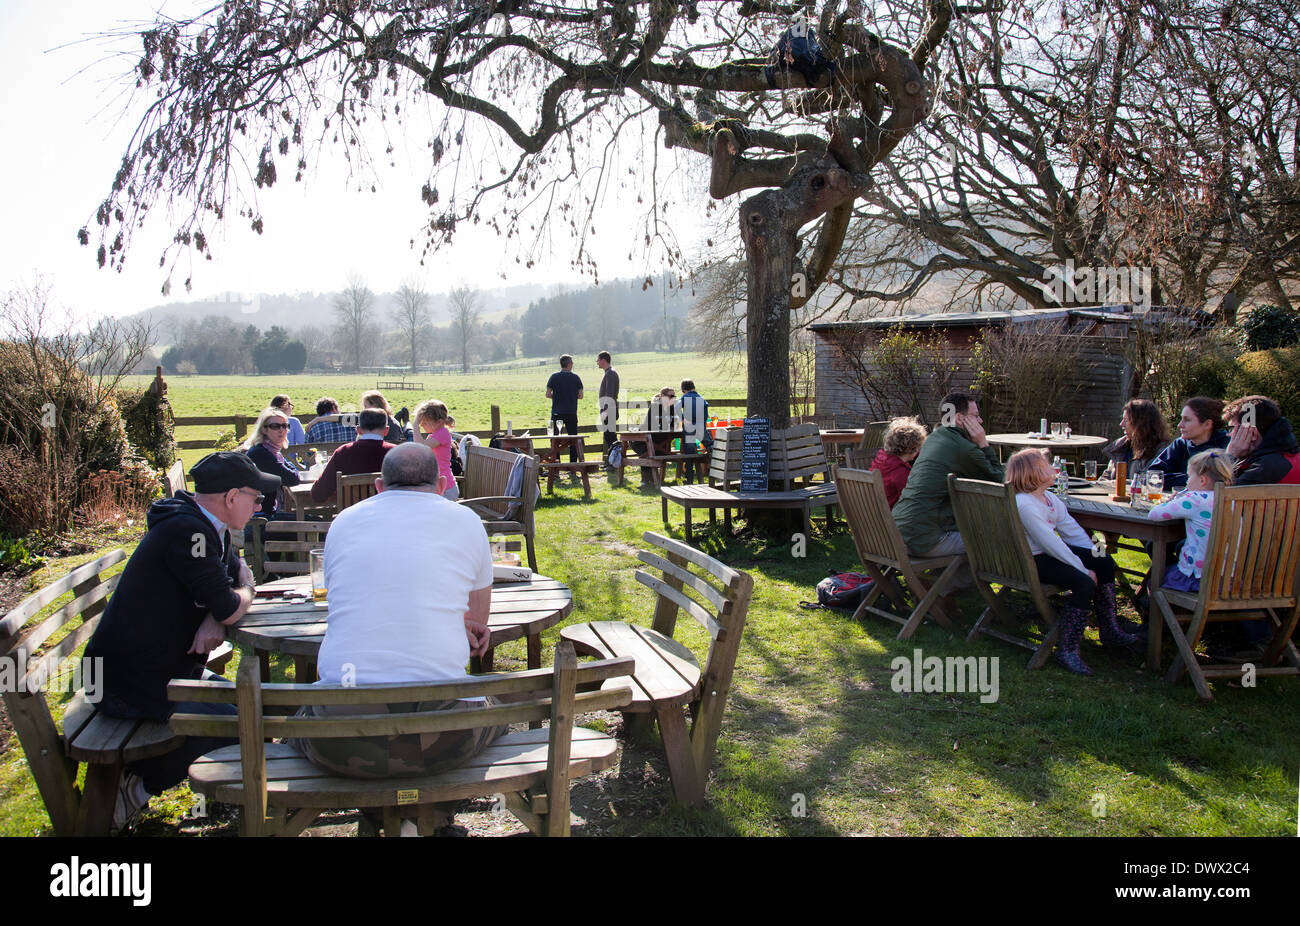 Locals at The Frog Free House and Restaurant Garden in Skirmett - Buckinghamshire - UK - Stock Image